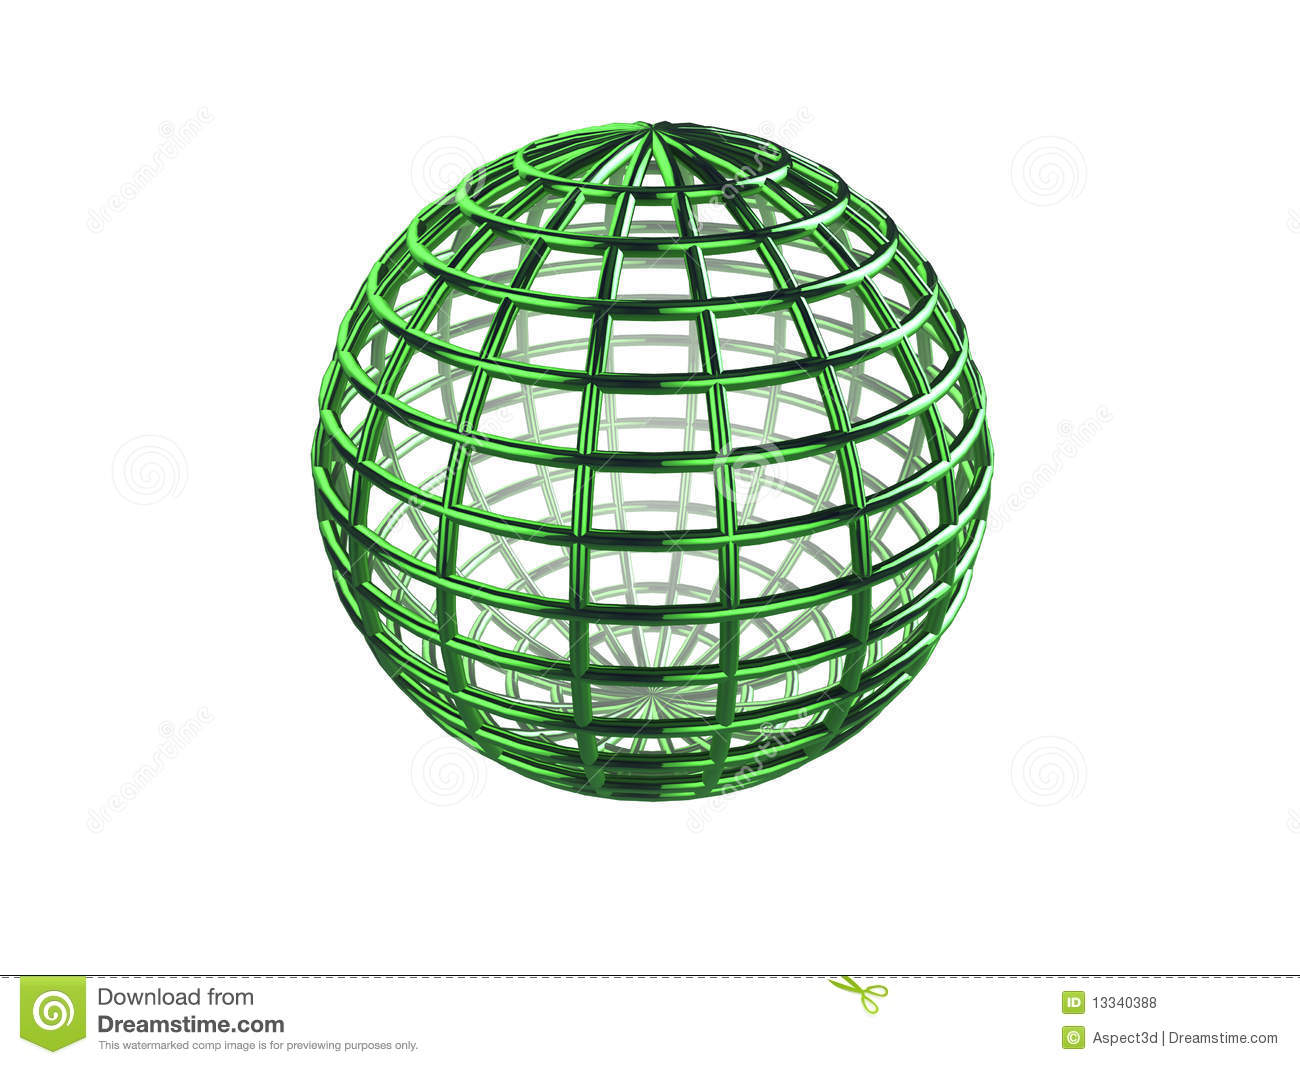 Wireframe Sphere Royalty Free Stock Photos